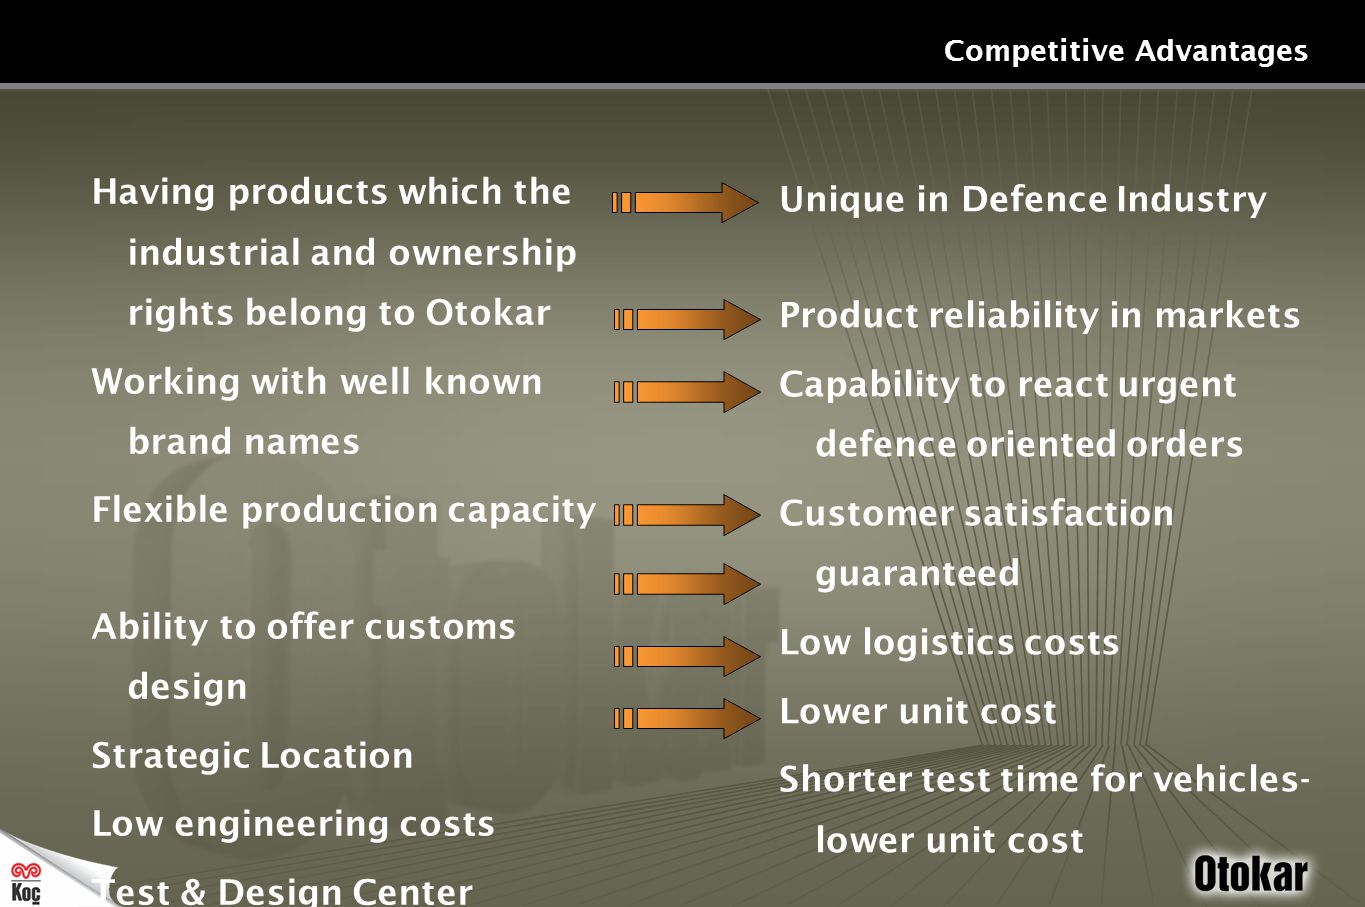 Having products which the industrial and ownership rights belong to Otokar Working with well known brand names Flexible production capacity Ability to offer customs design Strategic Location Low engineering costs Test & Design Center Unique in Defence Industry Product reliability in markets Capability to react urgent defence oriented orders Customer satisfaction guaranteed Low logistics costs Lower unit cost Shorter test time for vehicles- lower unit cost Competitive Advantages